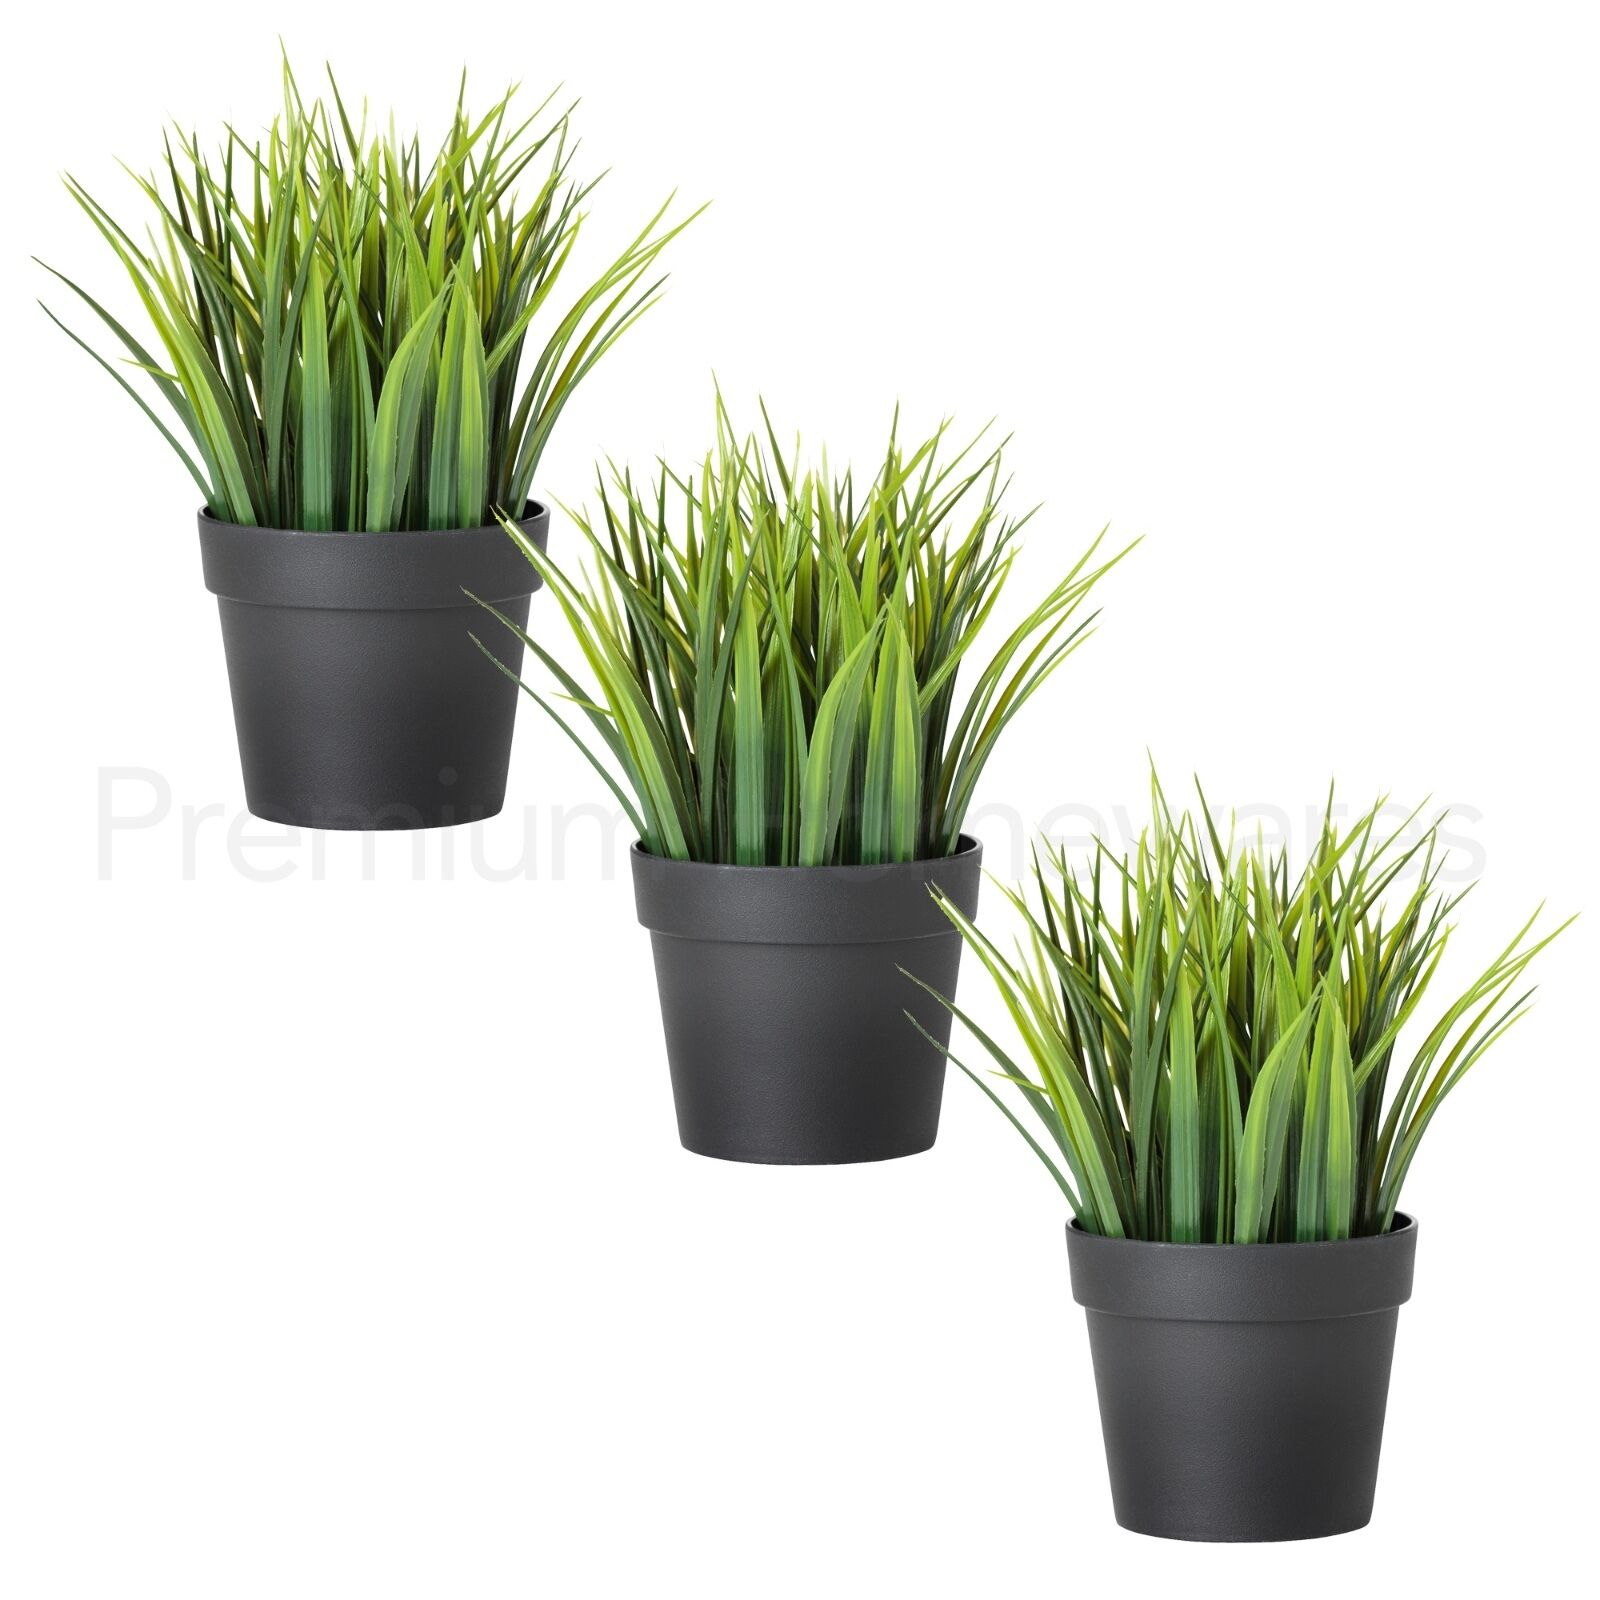 ikea plants 3 x ikea fejka artificial green grass plants in pots 20cm. Black Bedroom Furniture Sets. Home Design Ideas